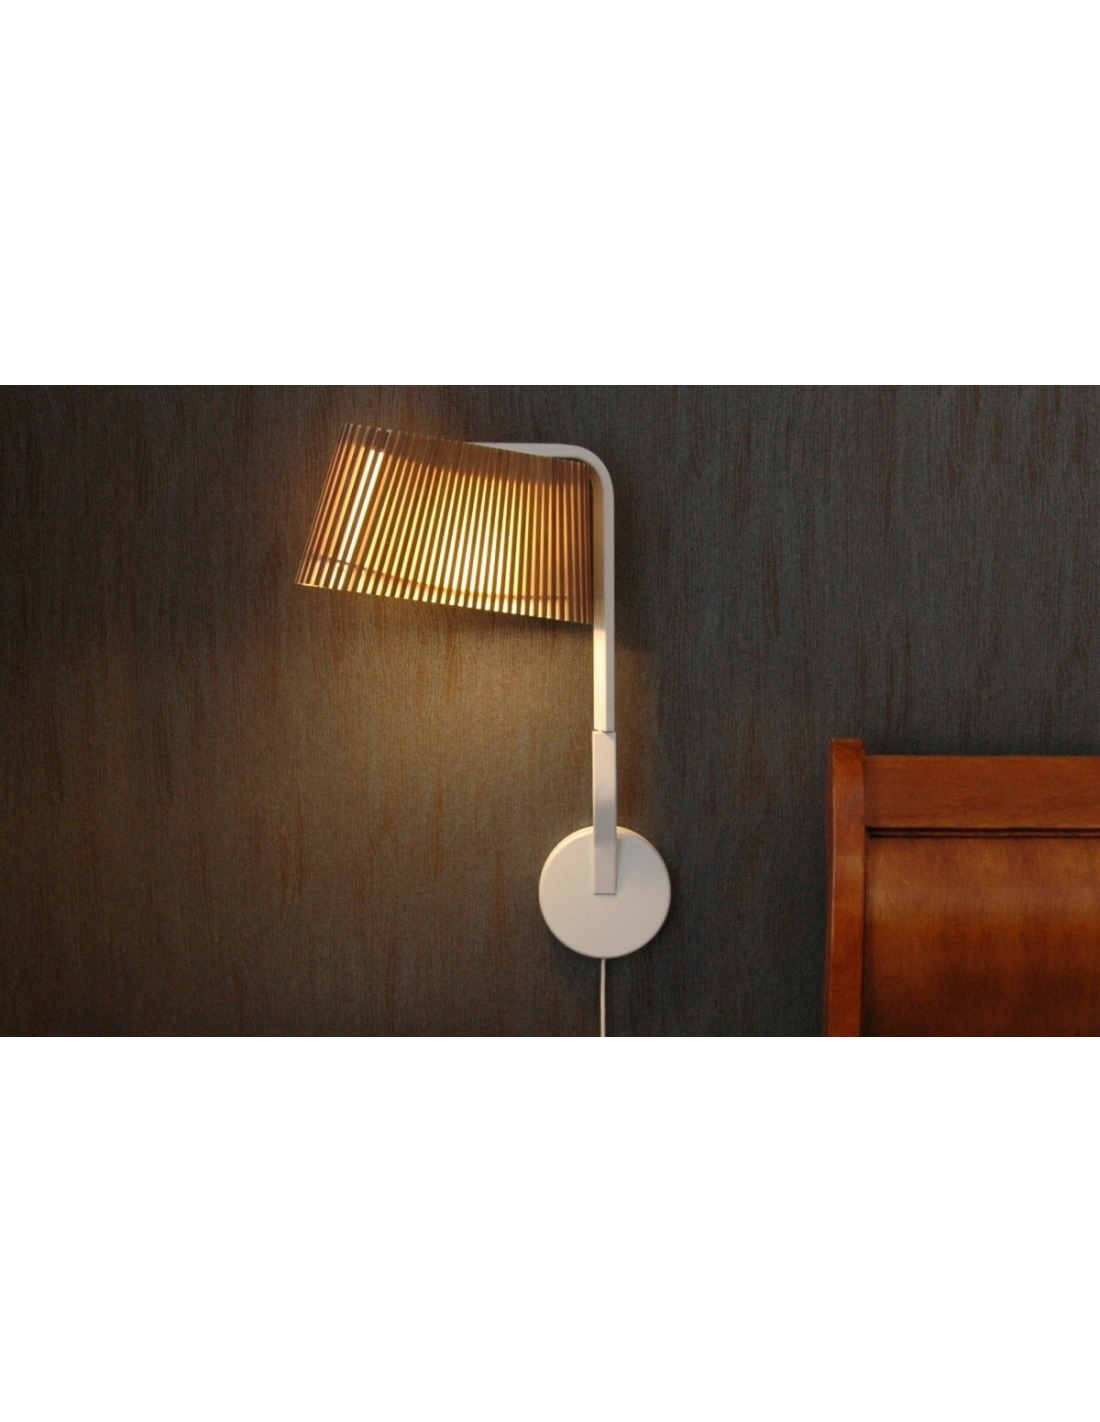 Applique Murale Bois Design : Applique murale Liseuse Led au design scandinave Owalo 7030 en bois